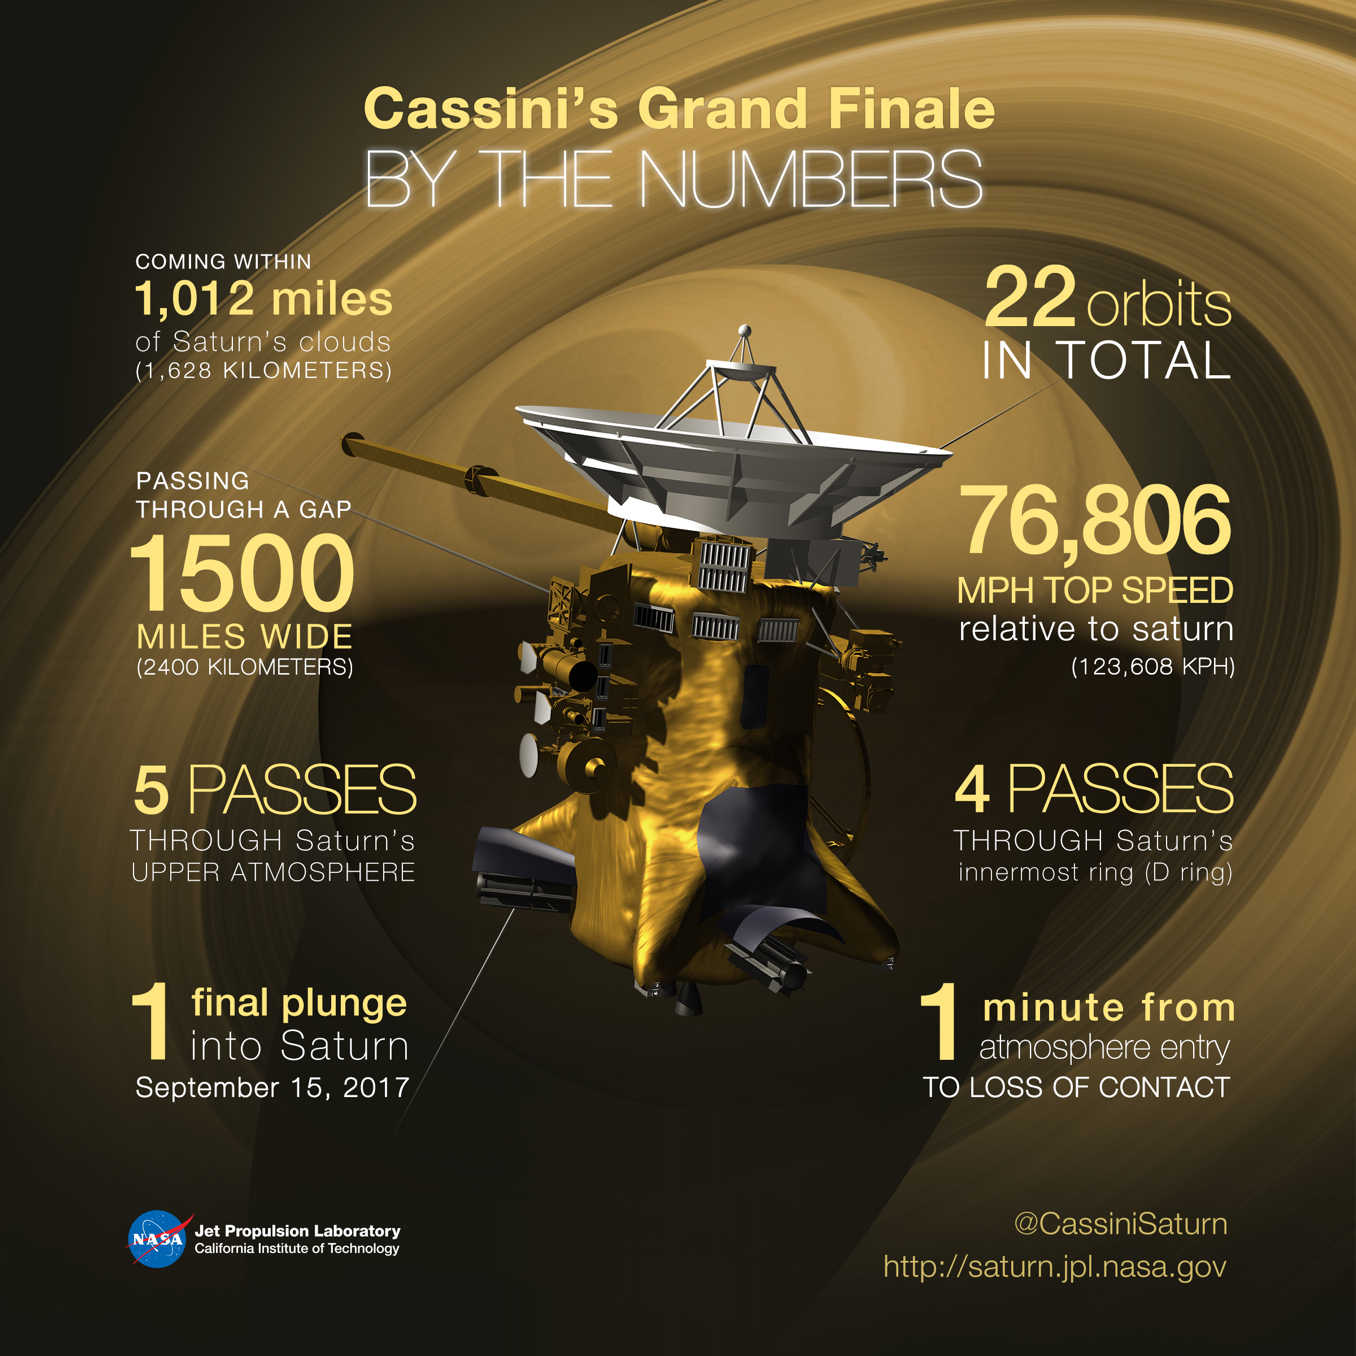 Cassini by the numbers